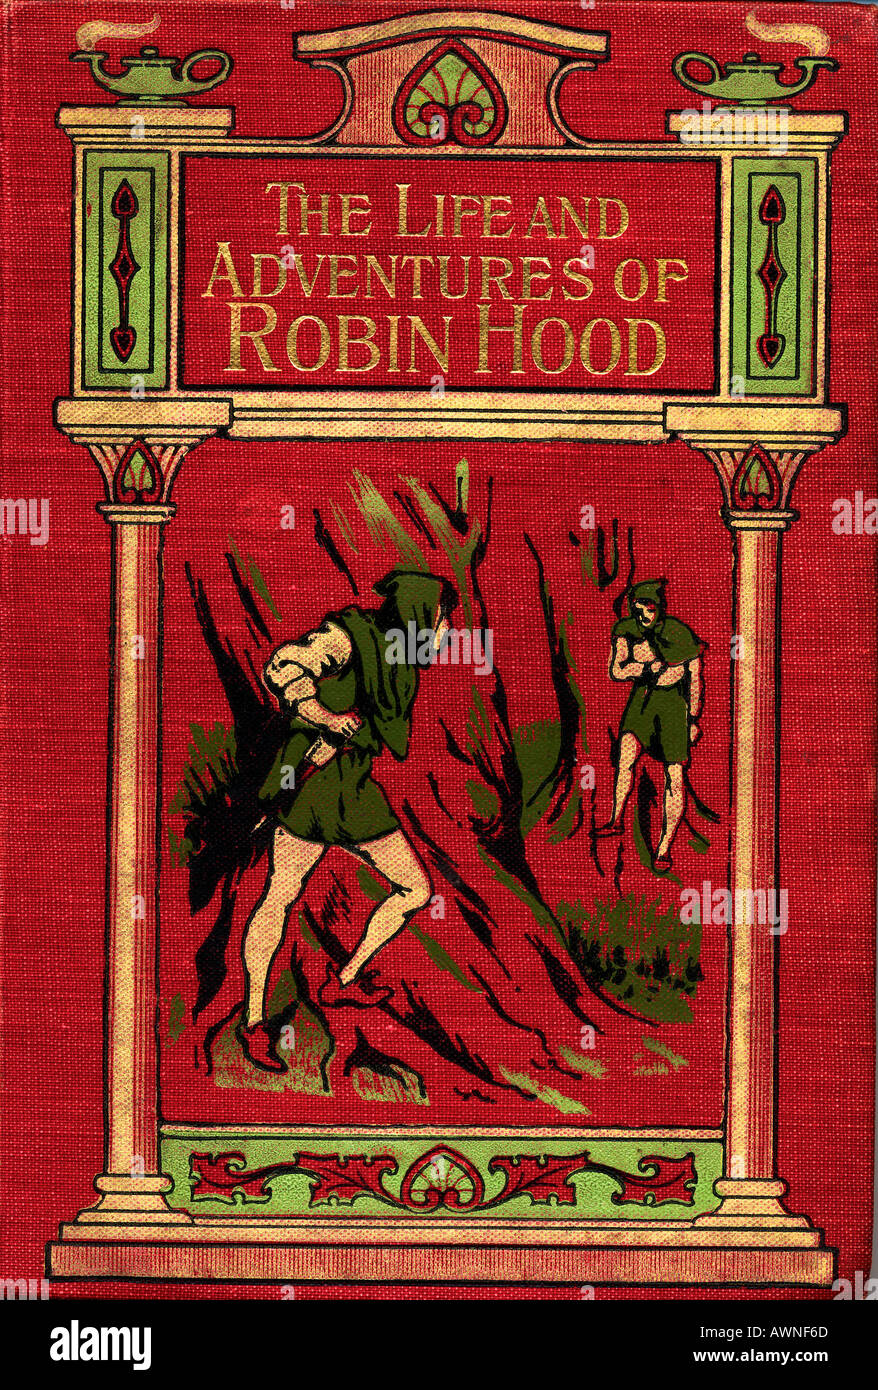 The Life and Adventures of Robin Hood. Front cover from the book of the same title by John B Marsh, published circa 1900. - Stock Image